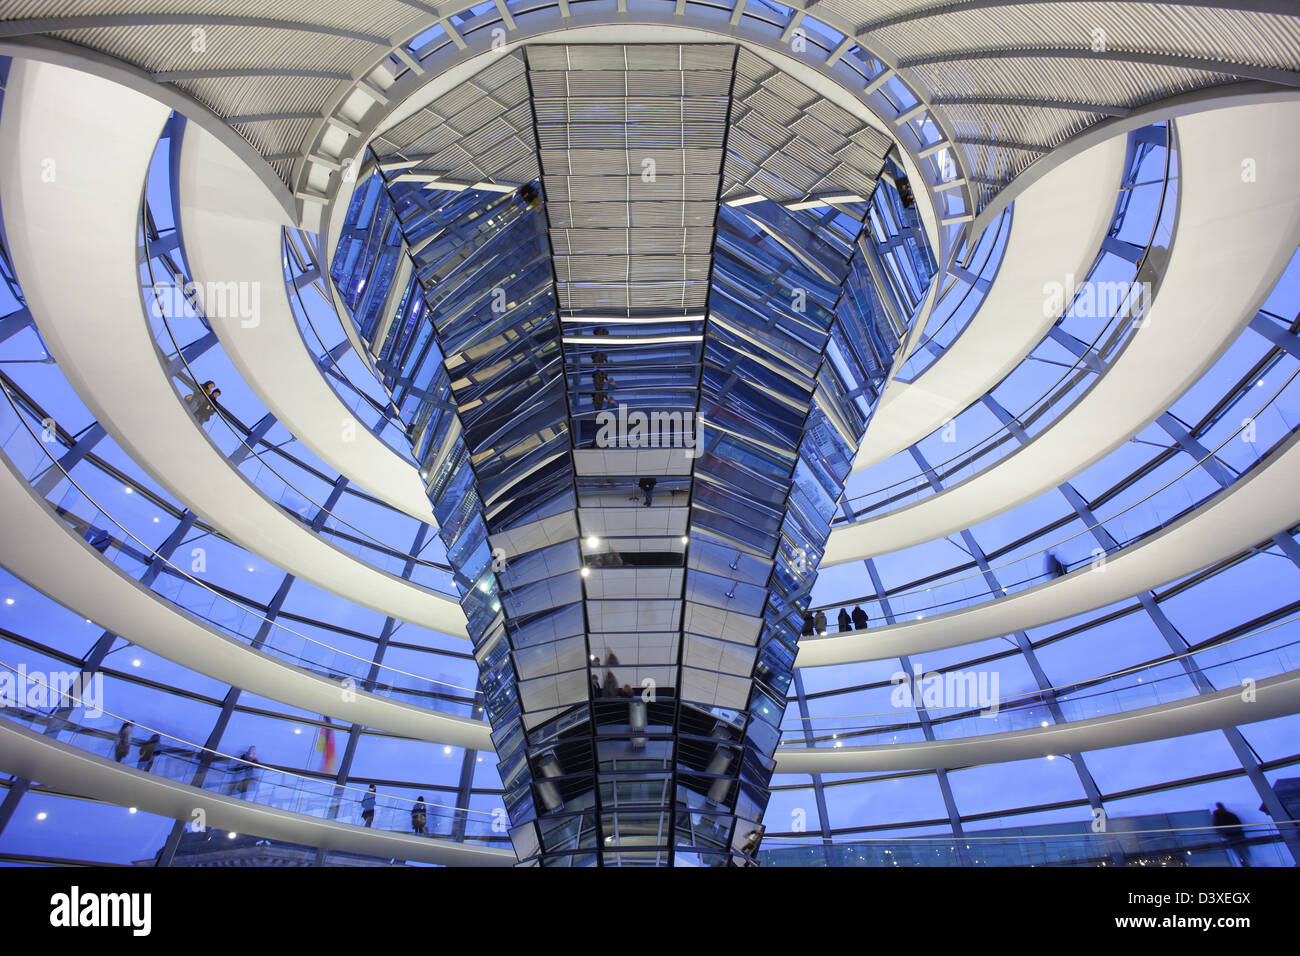 Berlin, Germany, illuminated Spiegelsaeule in the Reichstag dome Stock Photo